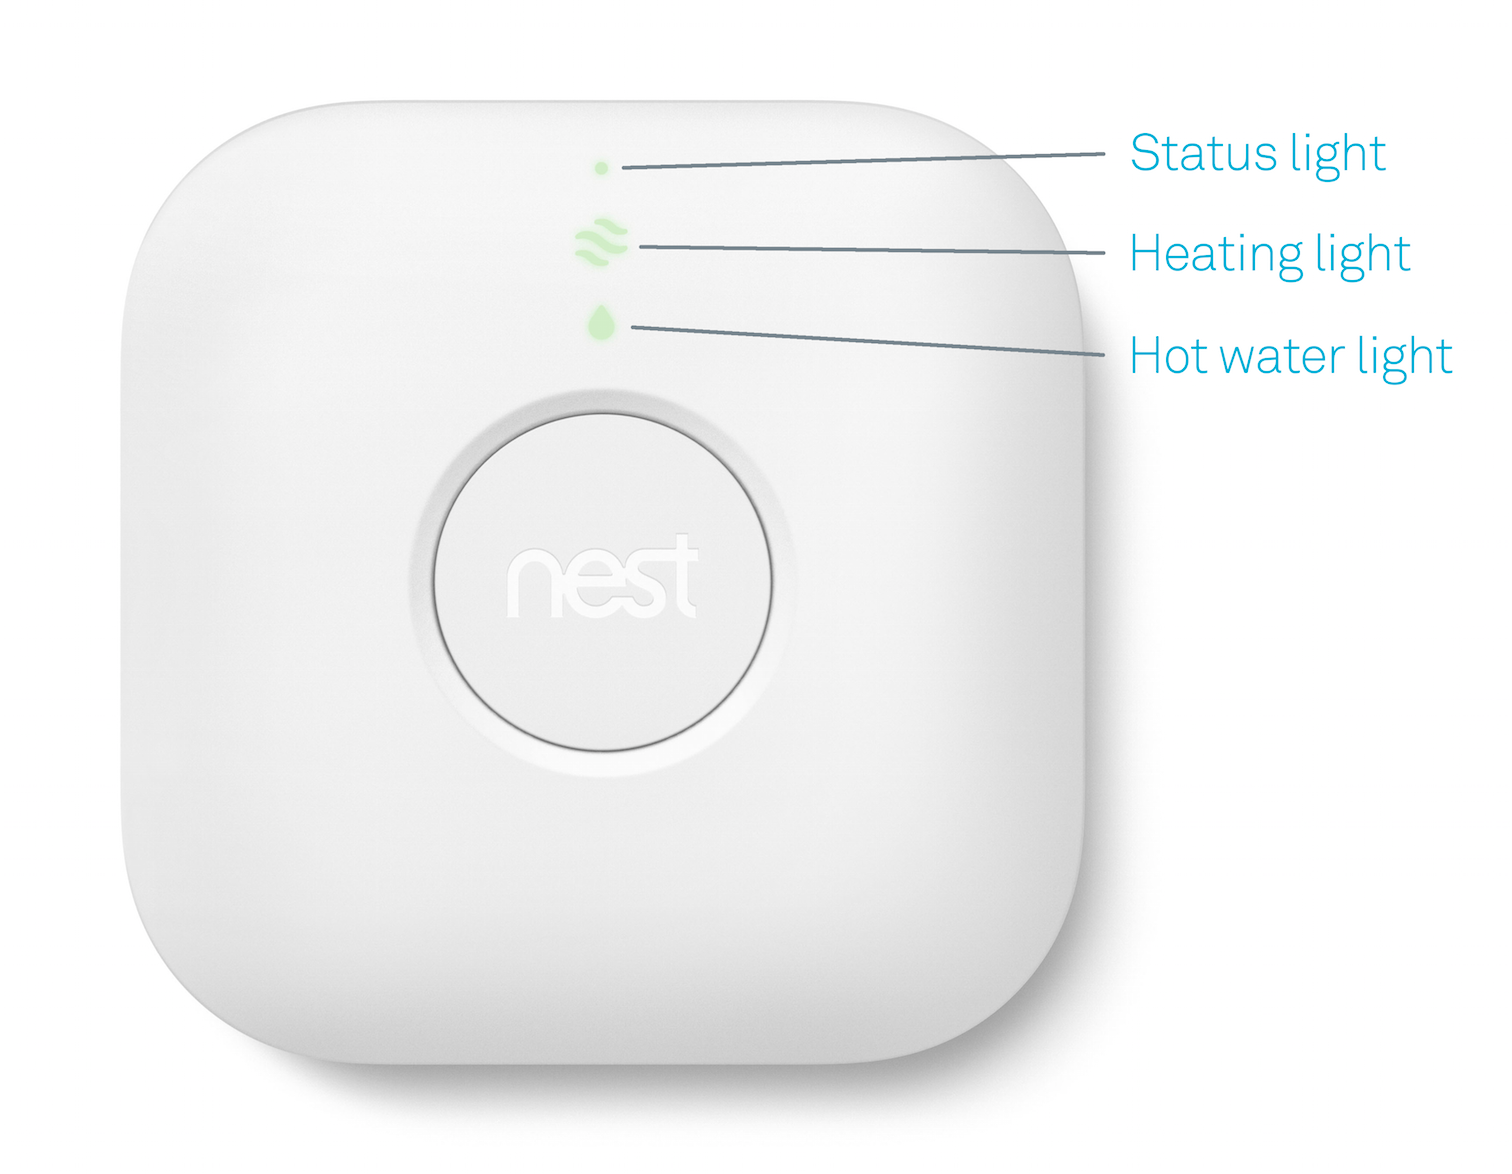 Comfortable nest thermostat blue wire gallery the best electrical what do the lights on the 3rd generation heat link mean swarovskicordoba Image collections